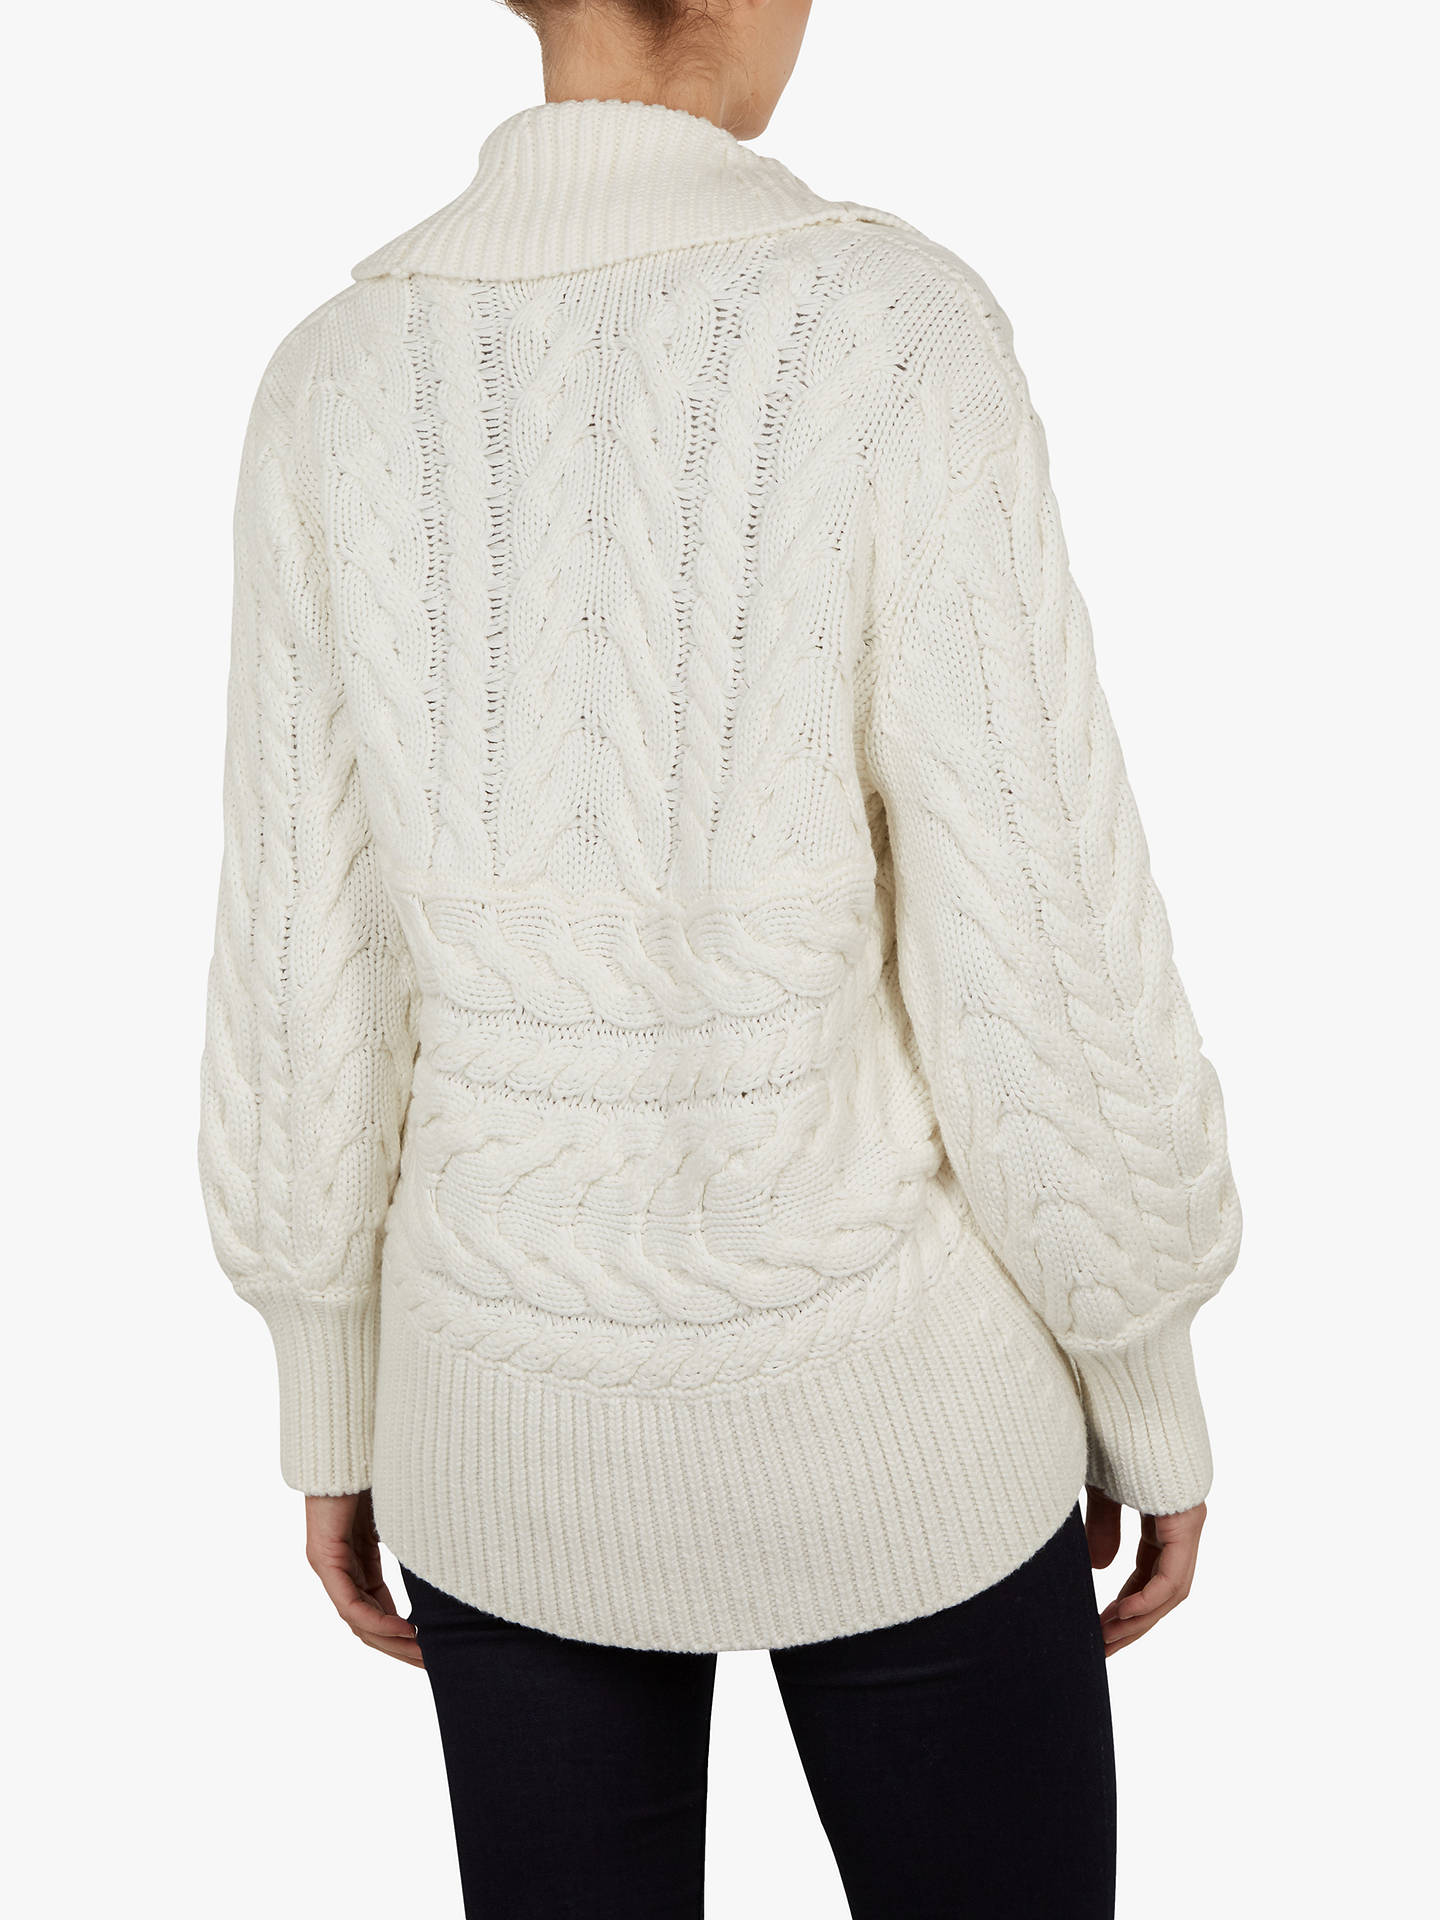 BuyTed Baker Filena Chunky Cable Knit Cardigan, Ivory, M/L Online at johnlewis.com